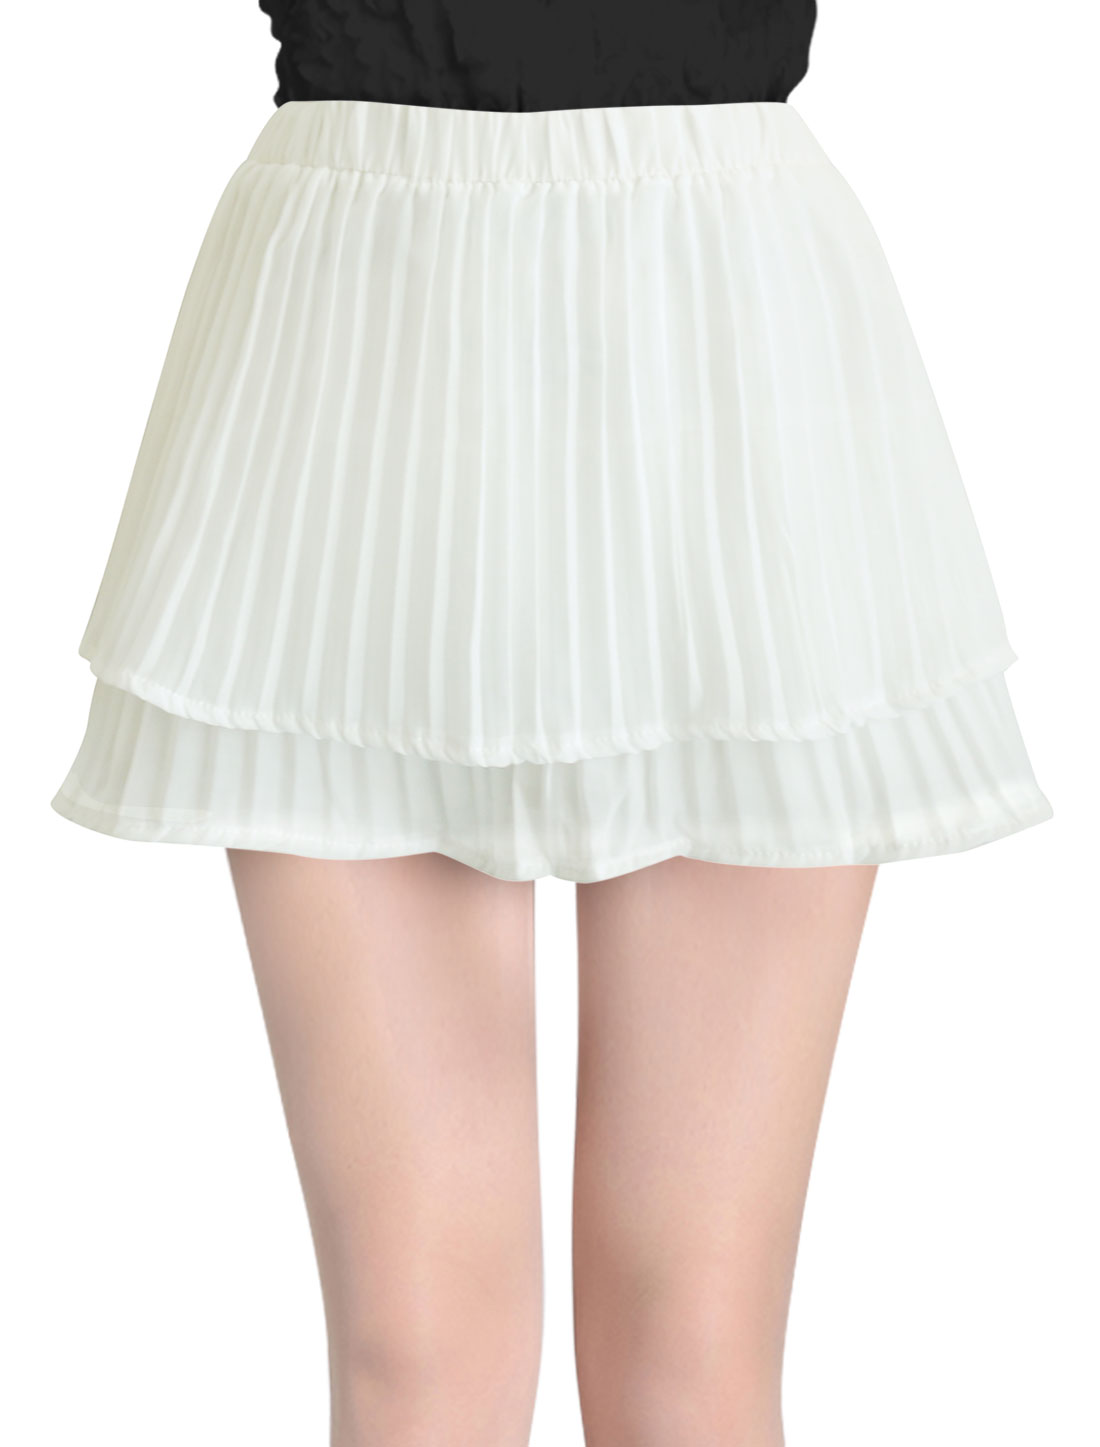 Lady NEW Stretchy Waist Tiered Design Pleated Skort White XS